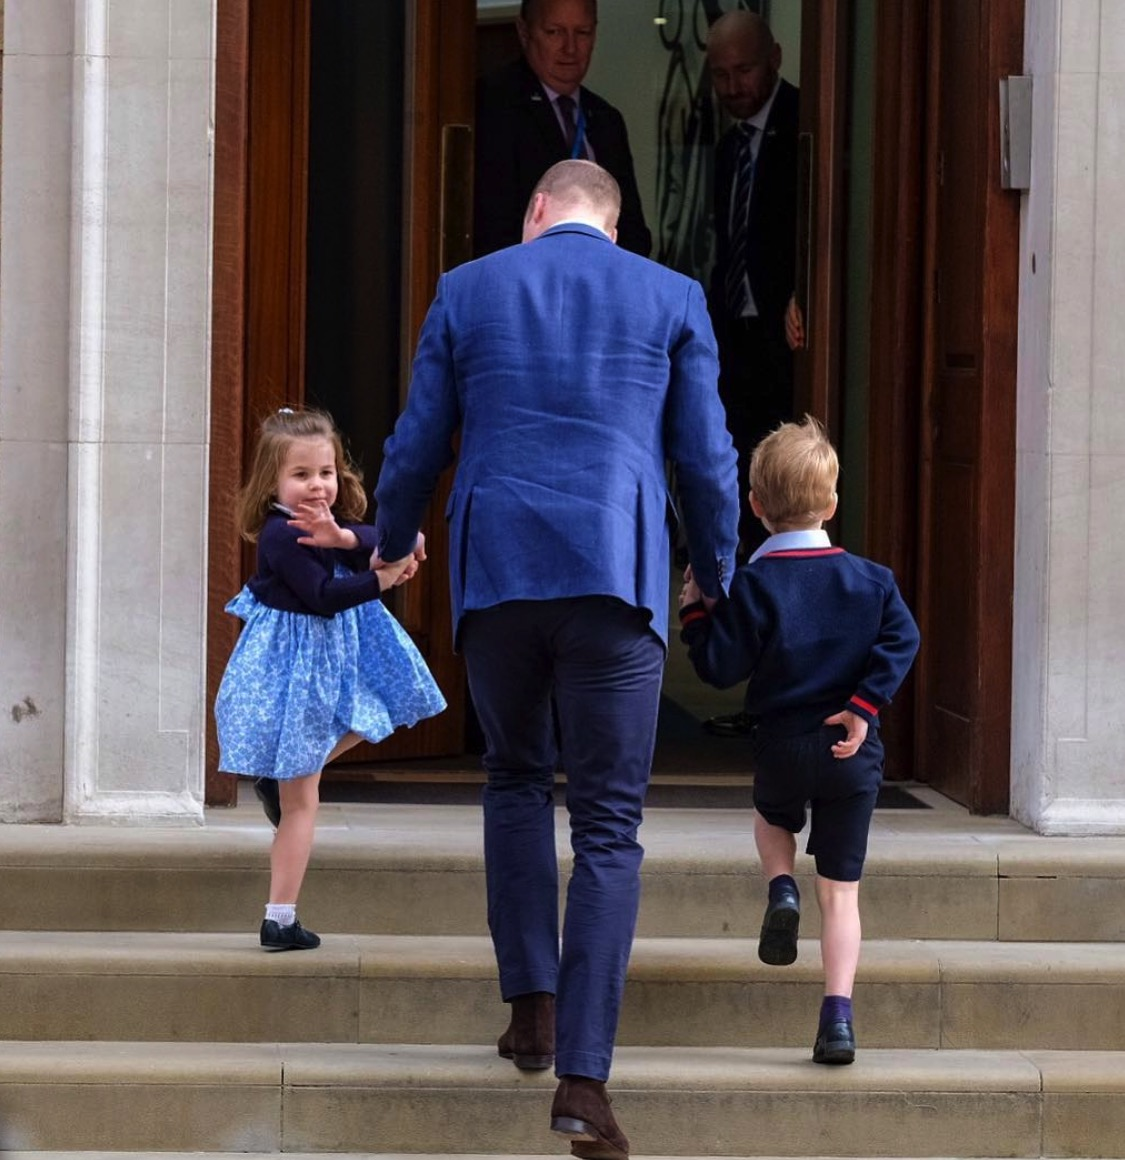 Prince William Arrives At St. Mary's Hospital With Kids